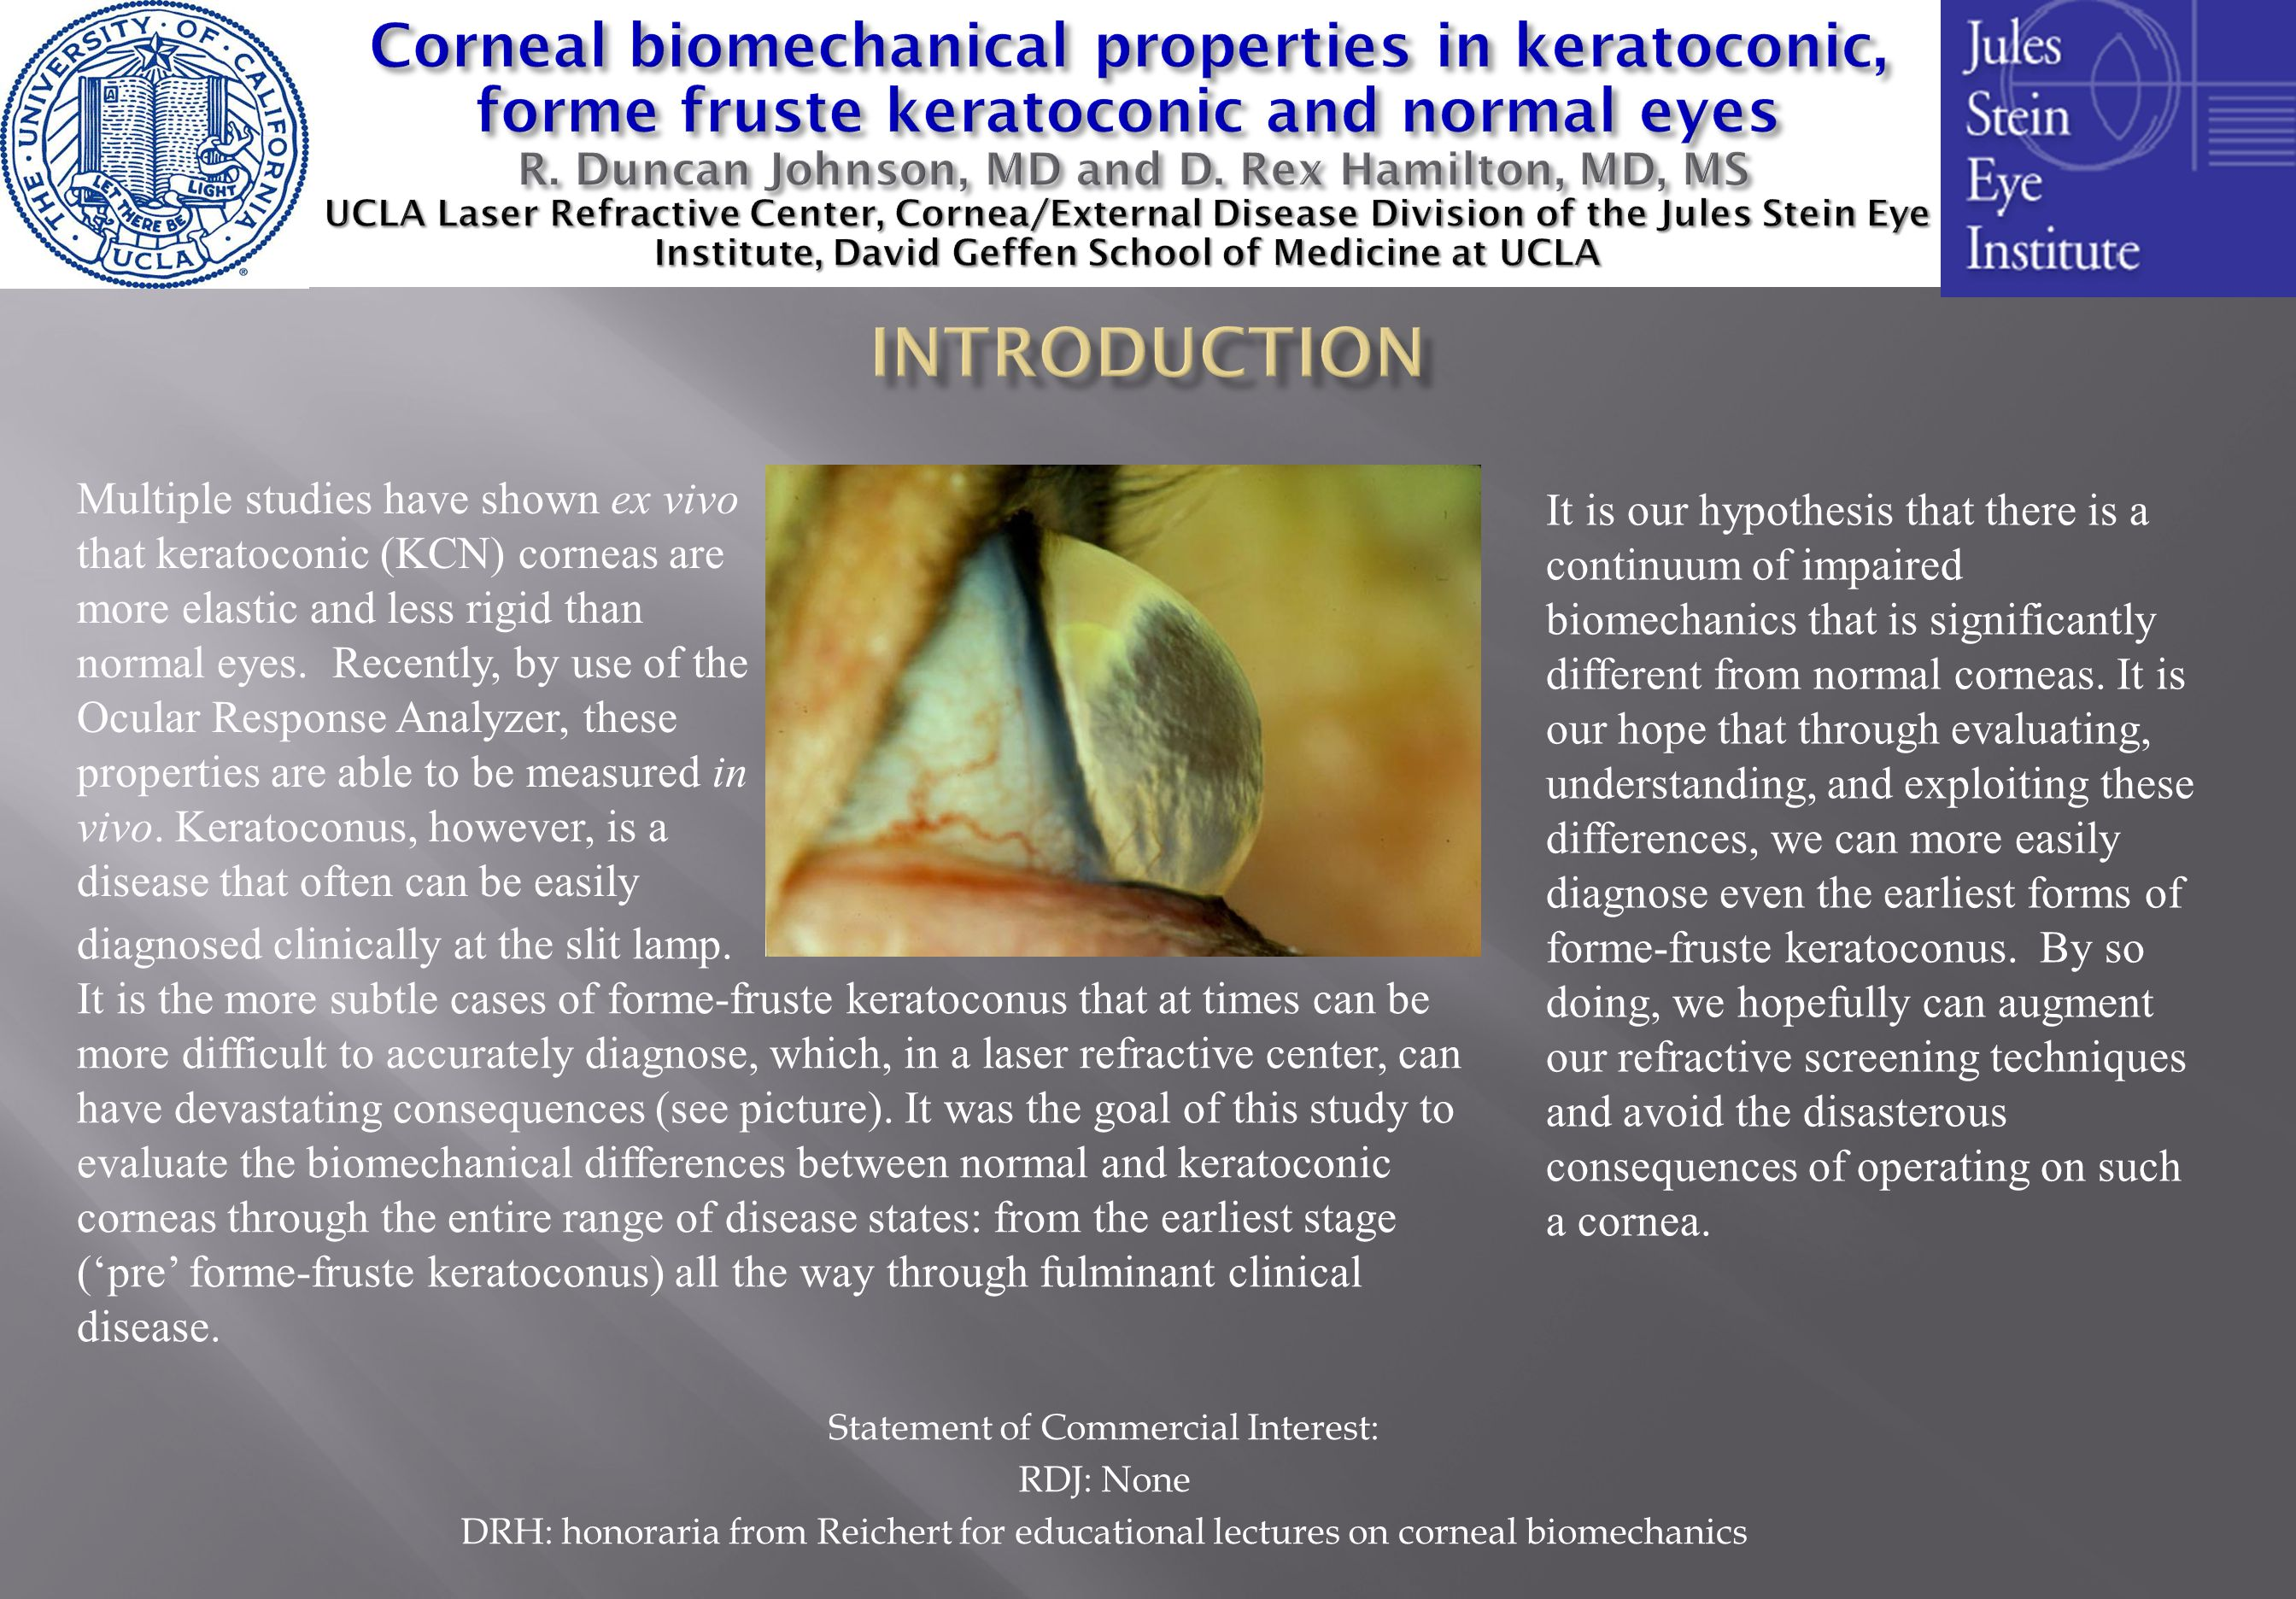 Statement of Commercial Interest: RDJ: None DRH: honoraria from Reichert for educational lectures on corneal biomechanics Multiple studies have shown